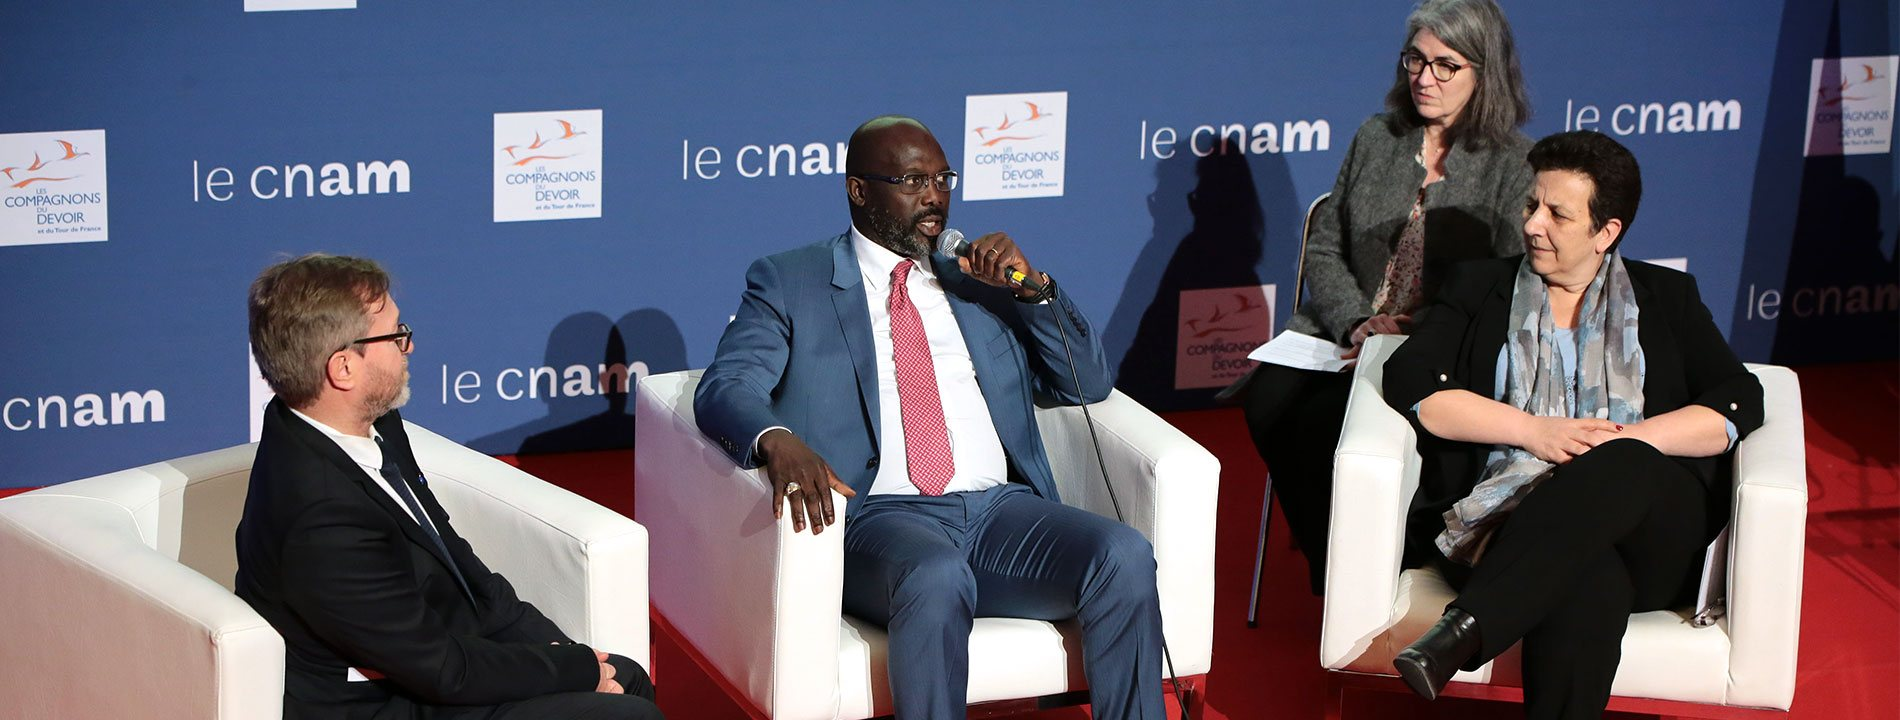 conférence georges weah